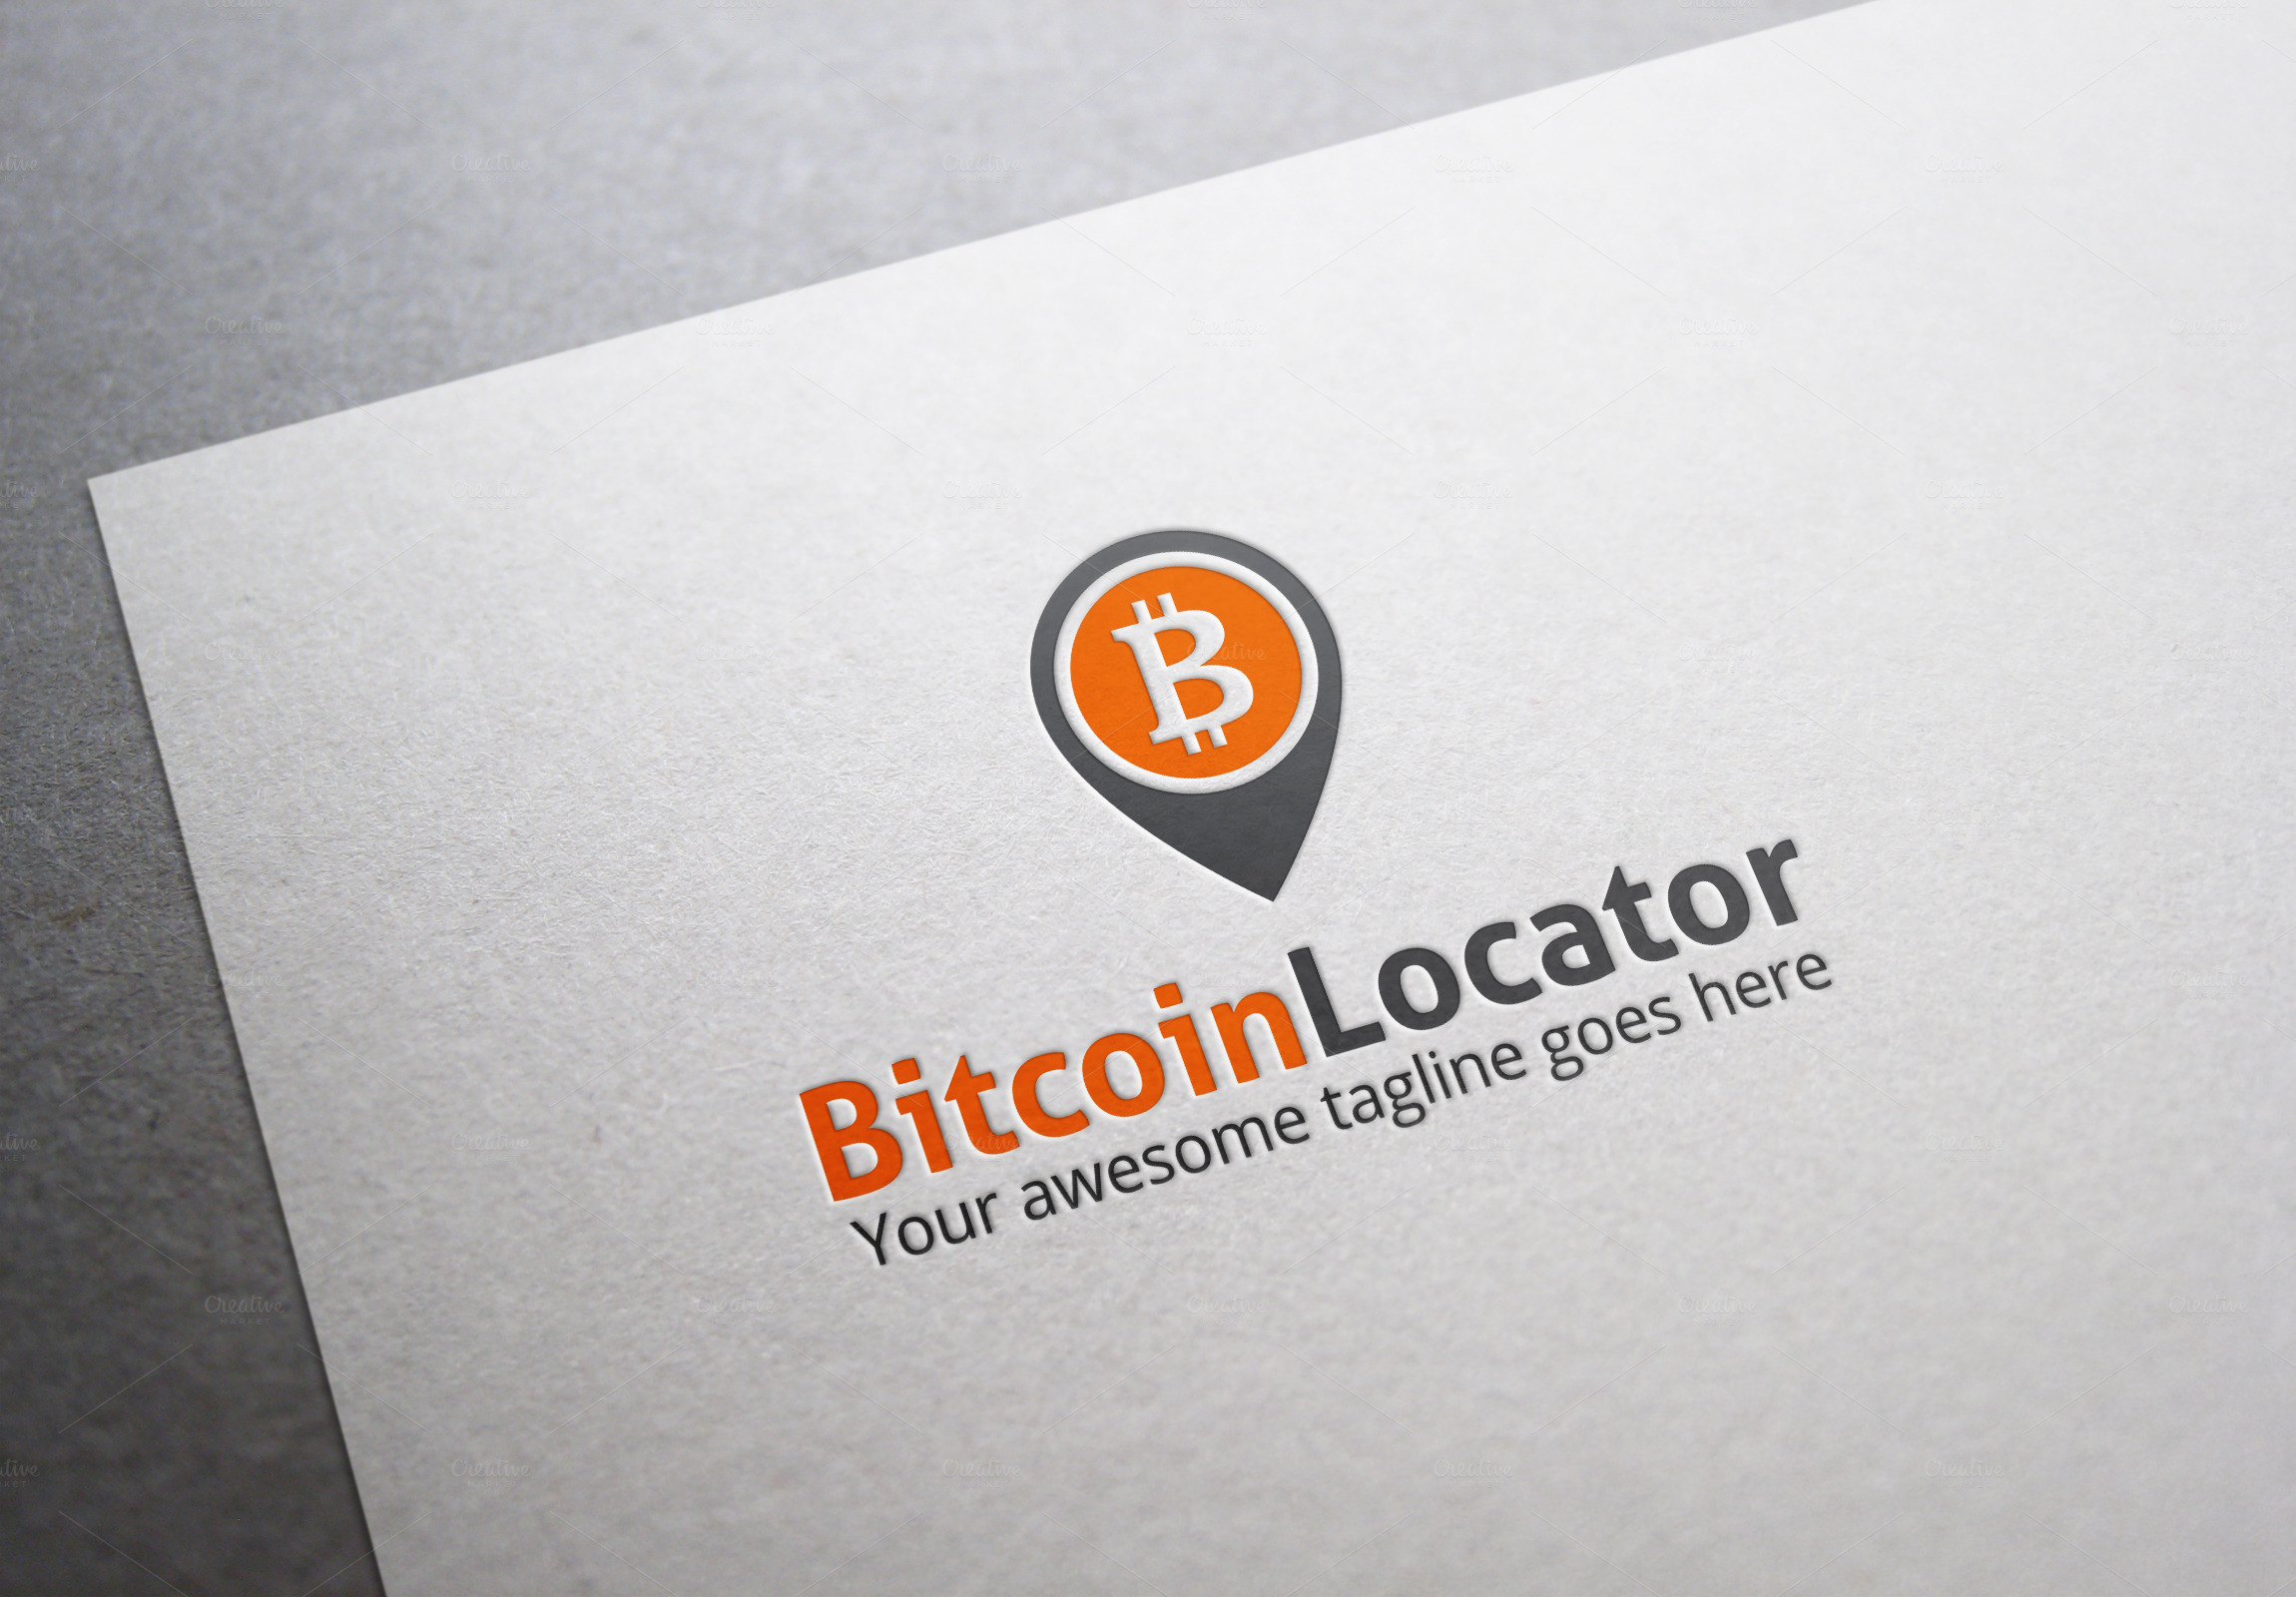 bitcoin locator logo logo templates on creative market